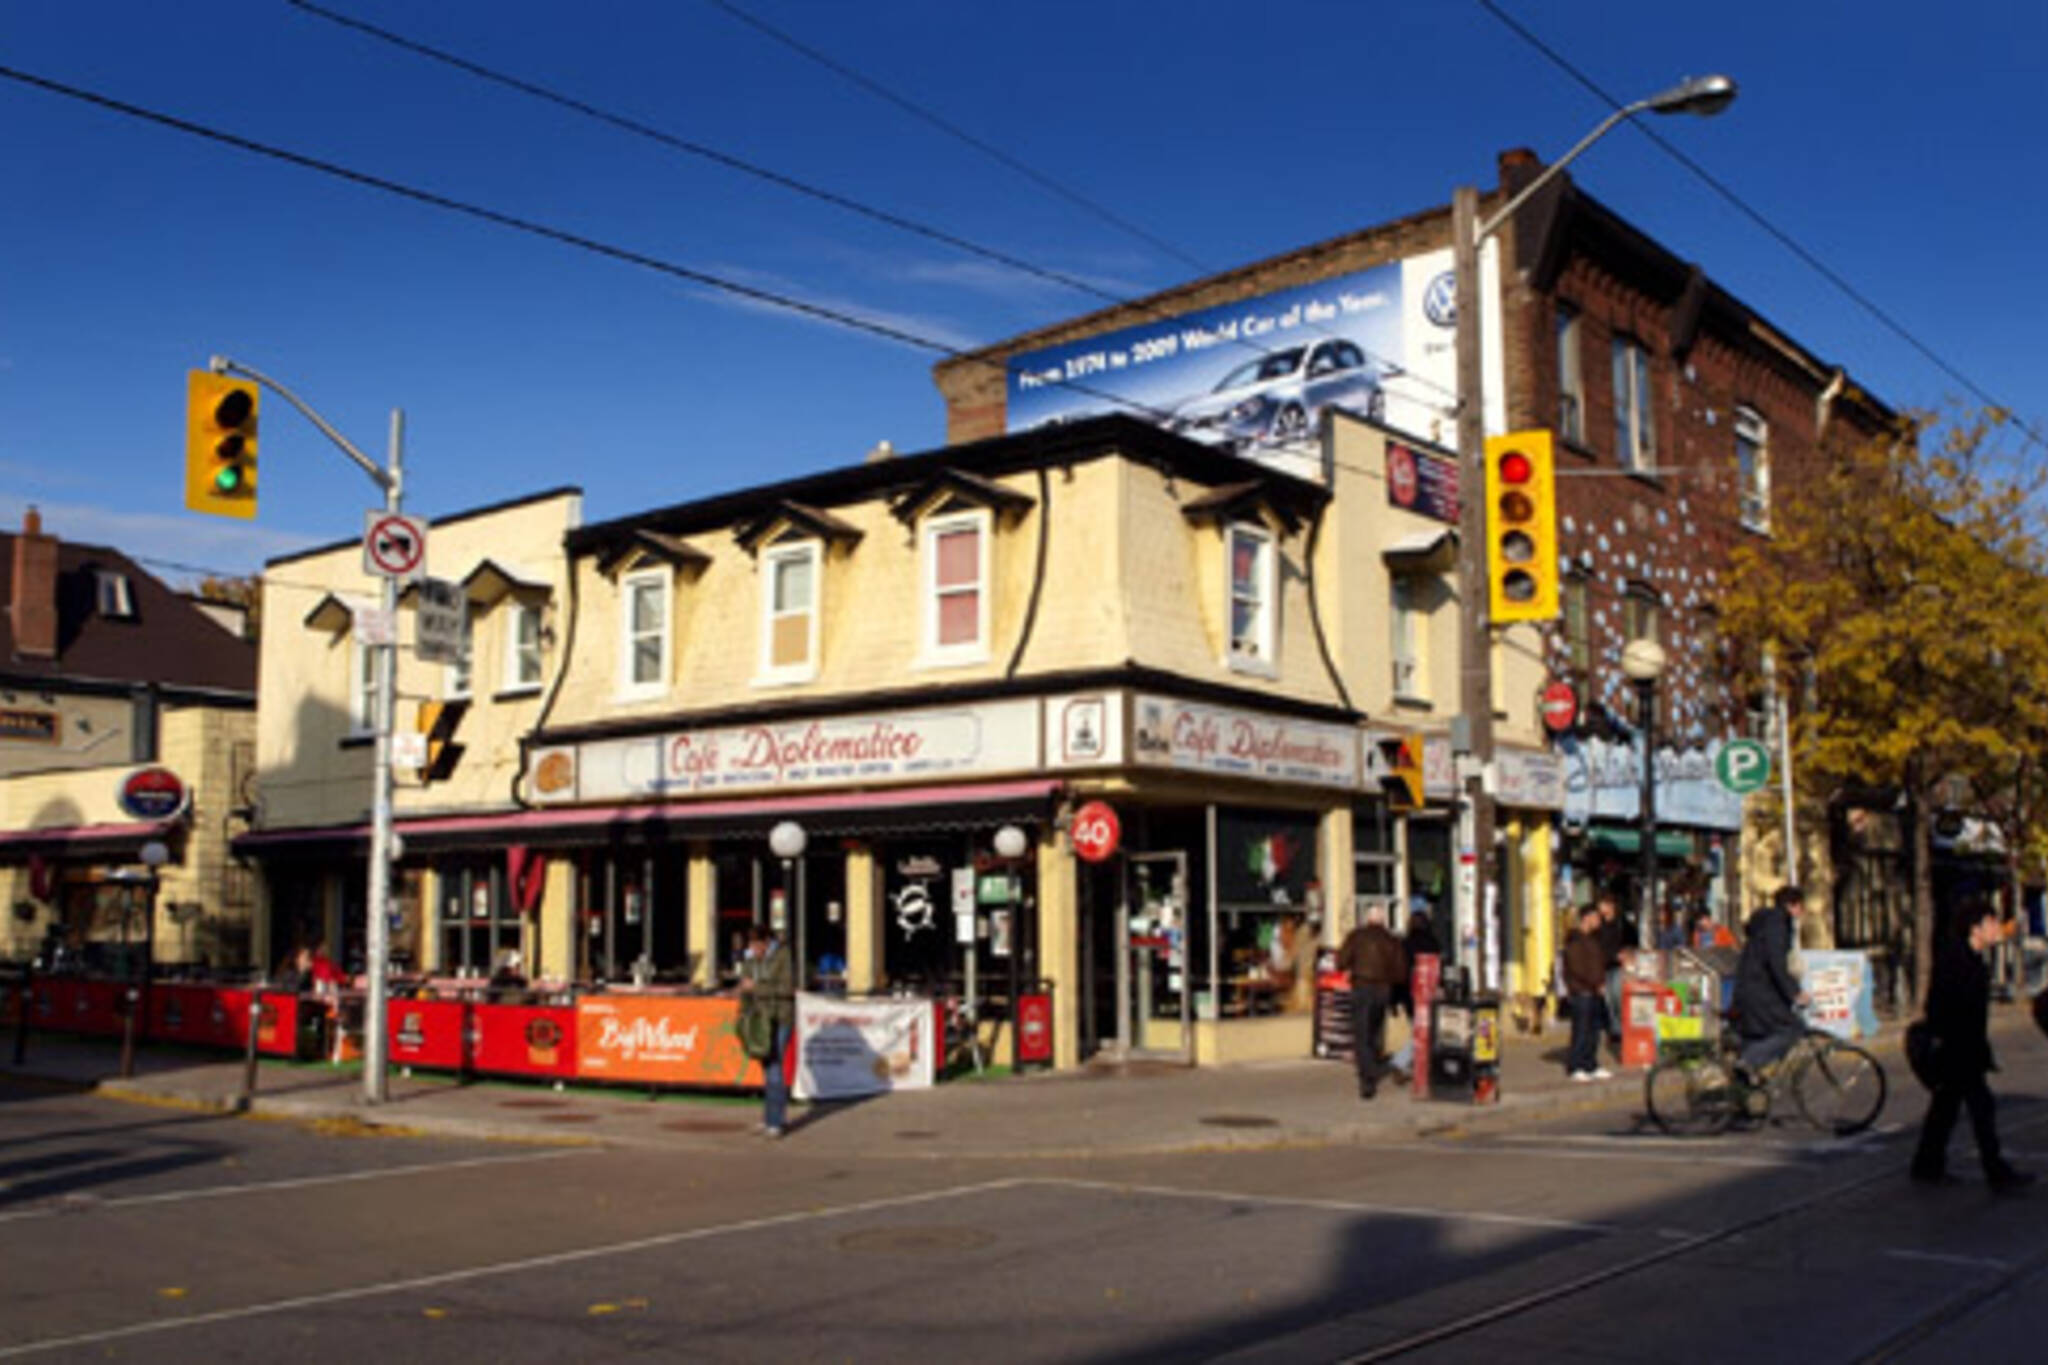 The Café Diplomatico in Little Italy